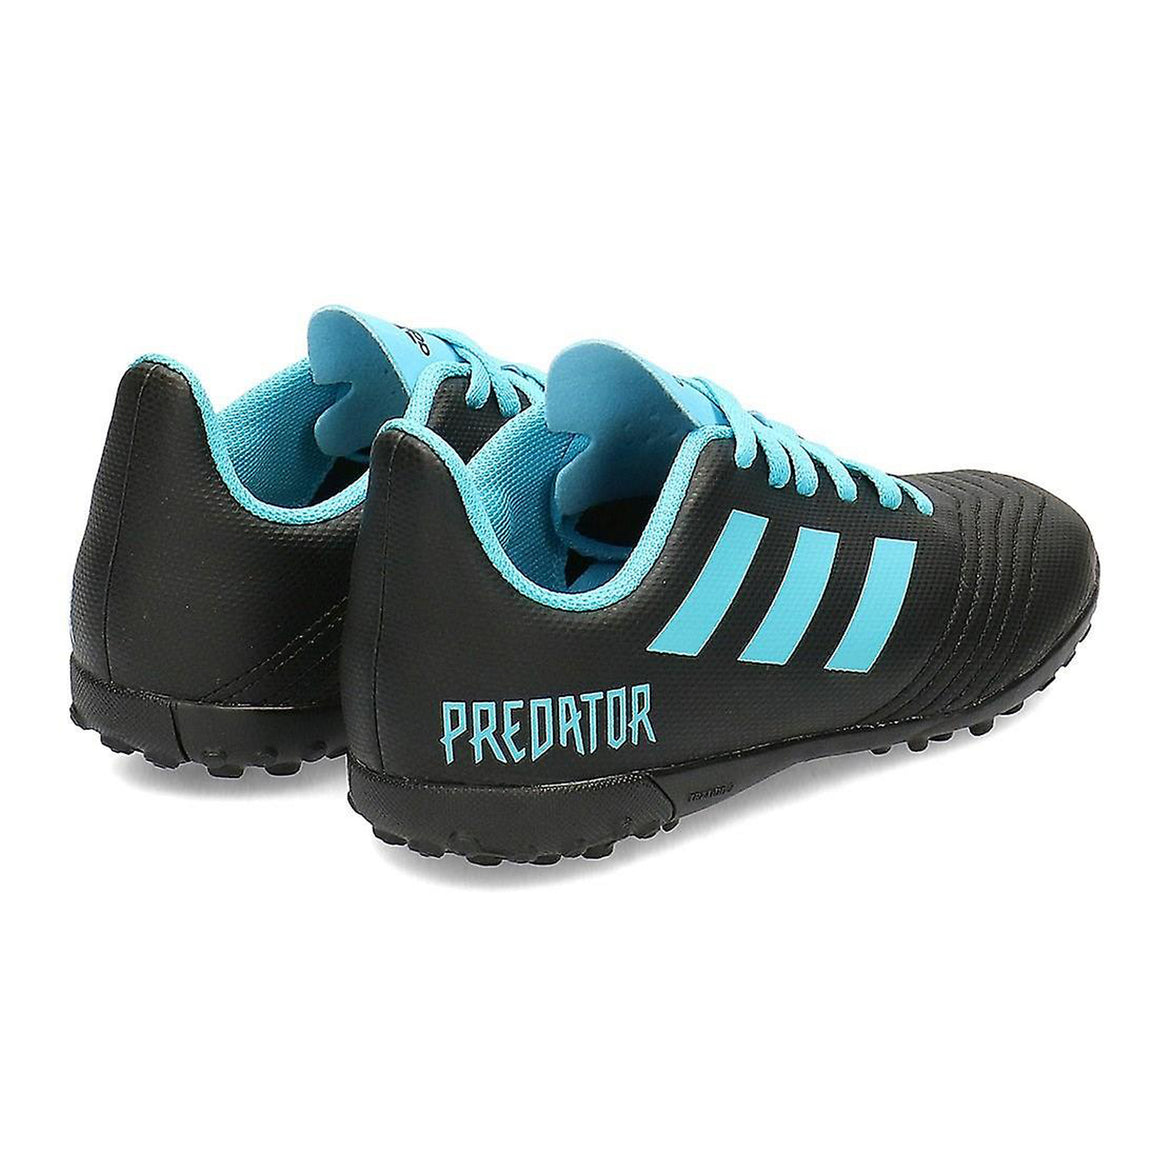 Predator 19.4 TF Jnr Football Boots for Kids in Black & Sky